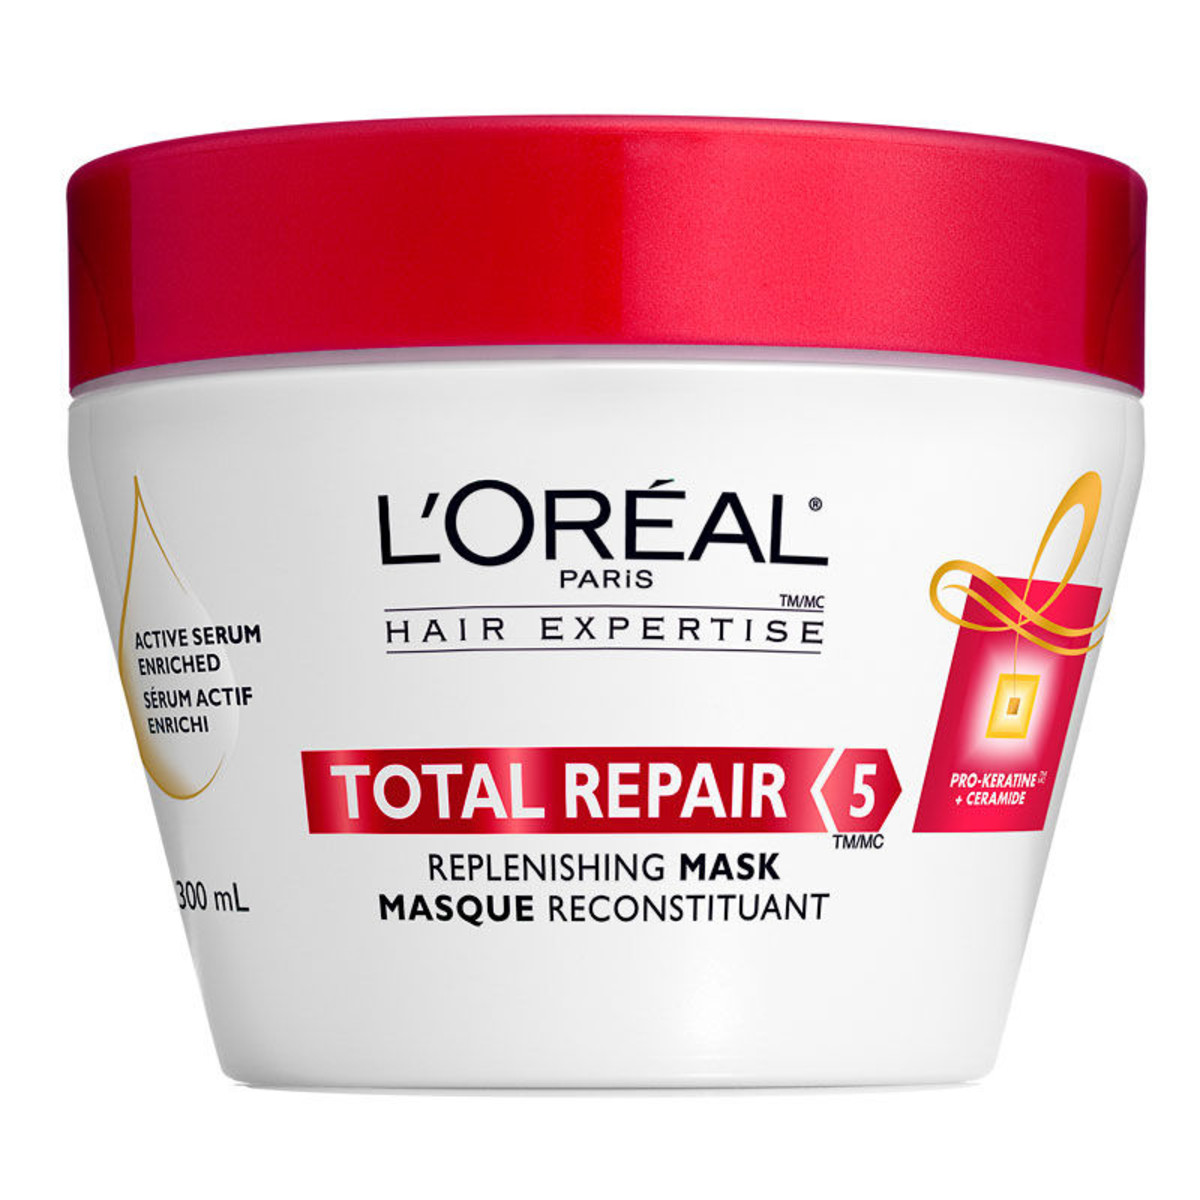 L'Oreal Paris Total Repair 5 Replenishing Mask